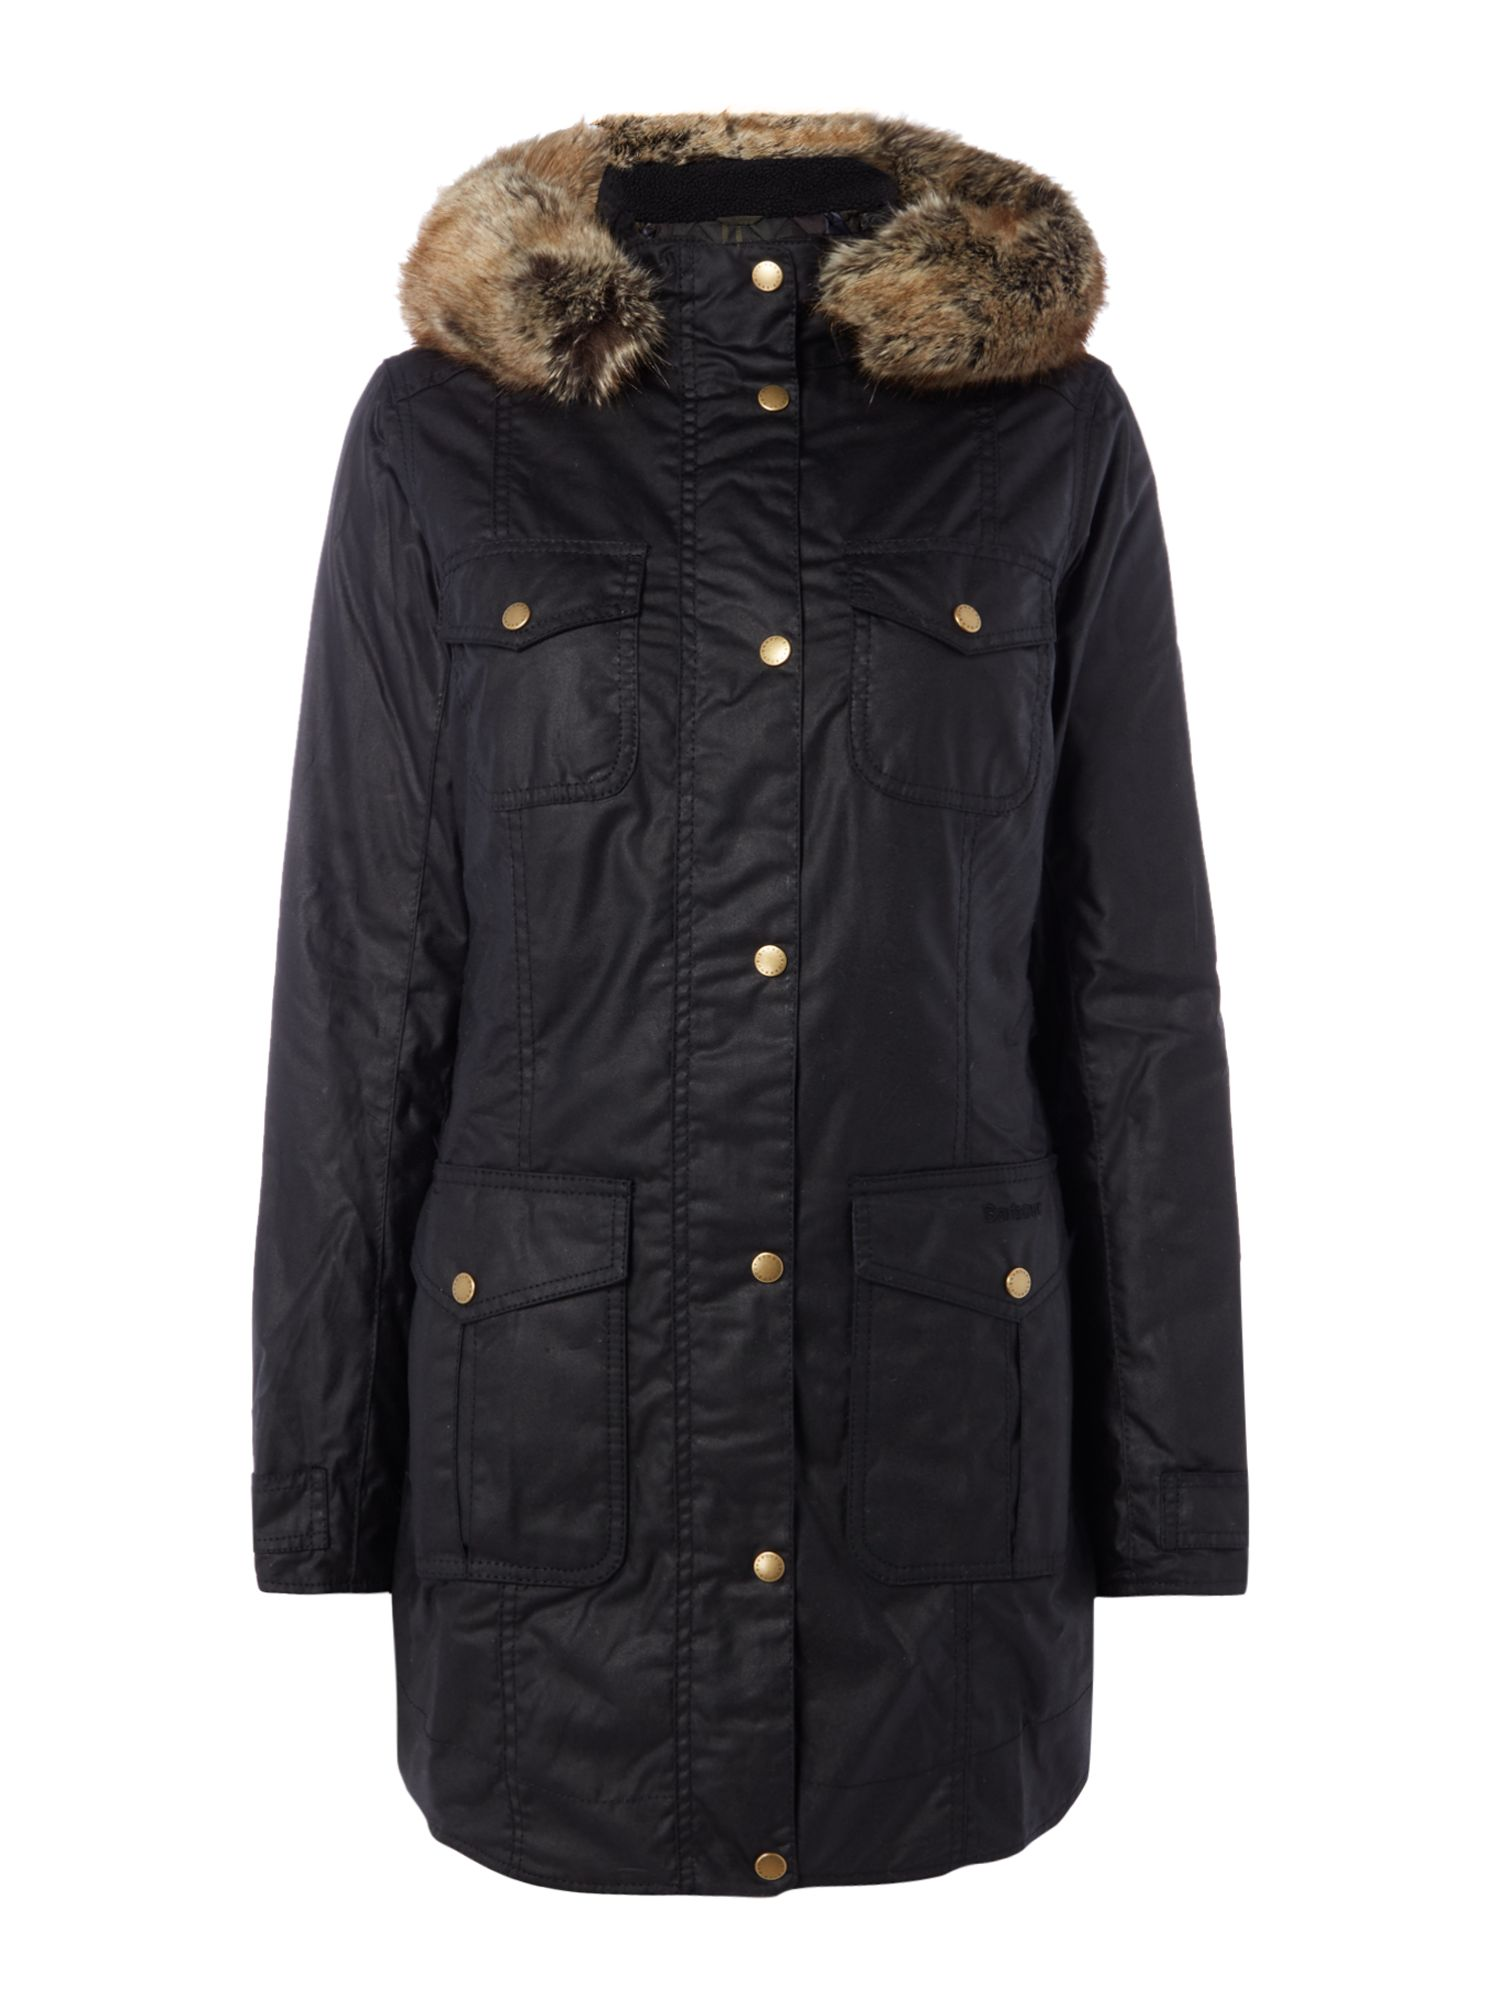 Barbour Ashbridge Wax Jacket With Fur Trim Hood, Black